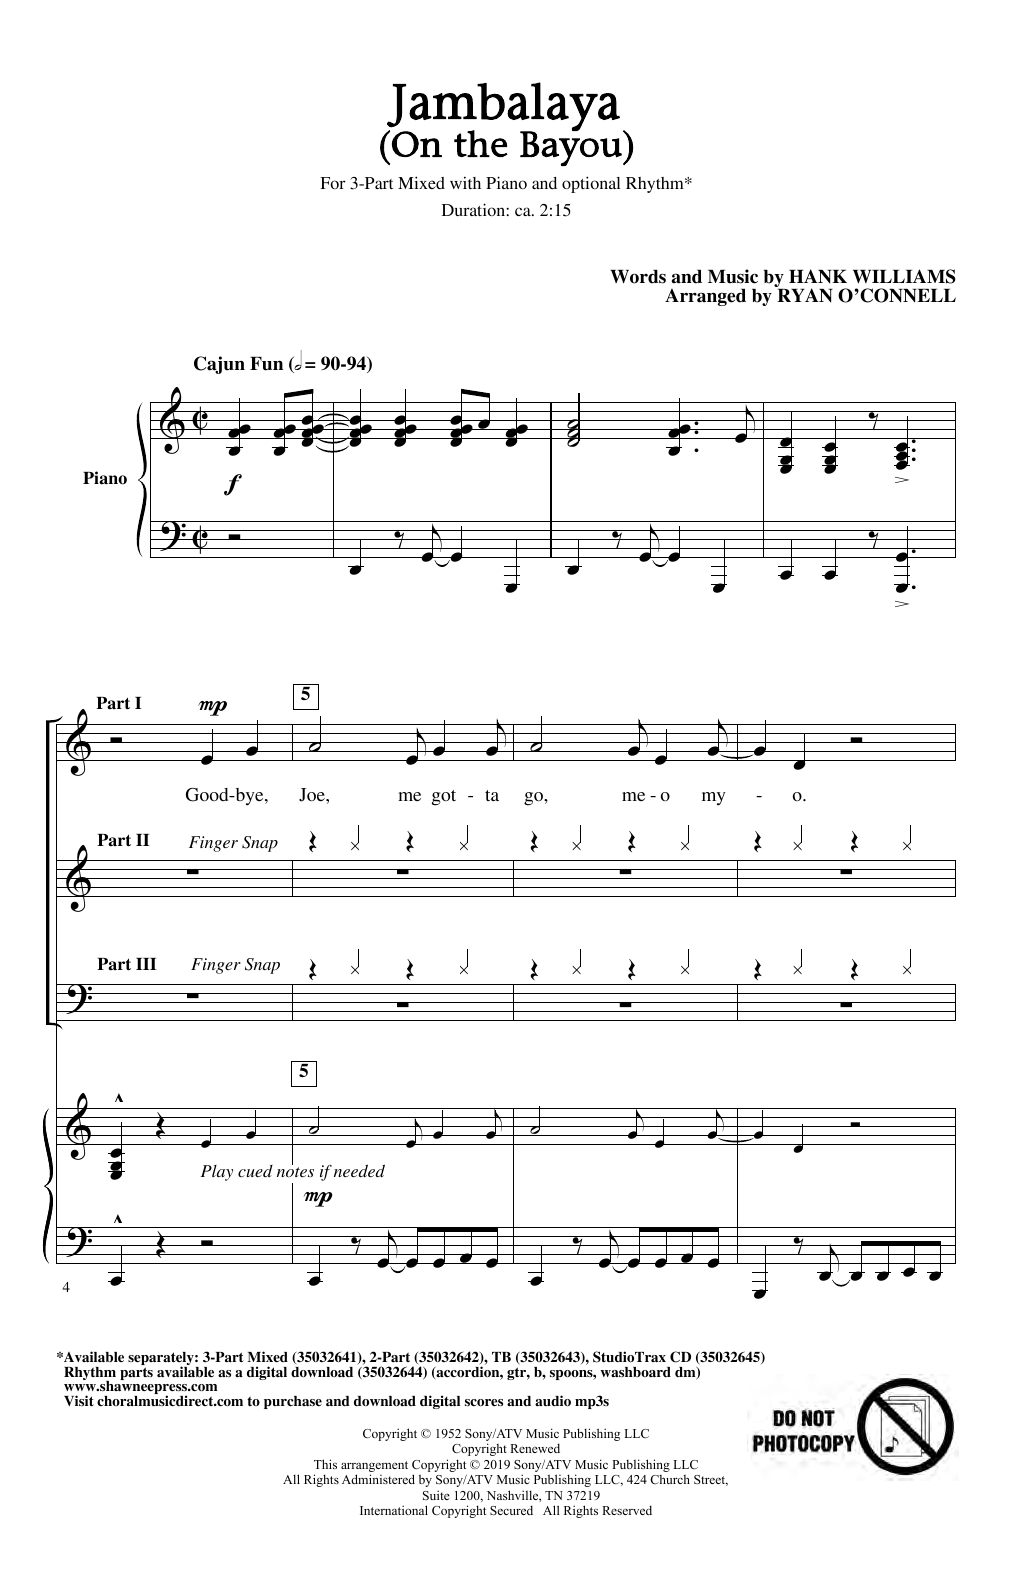 Hank Williams Jambalaya (On The Bayou) (arr. Ryan O'Connell) sheet music notes and chords. Download Printable PDF.